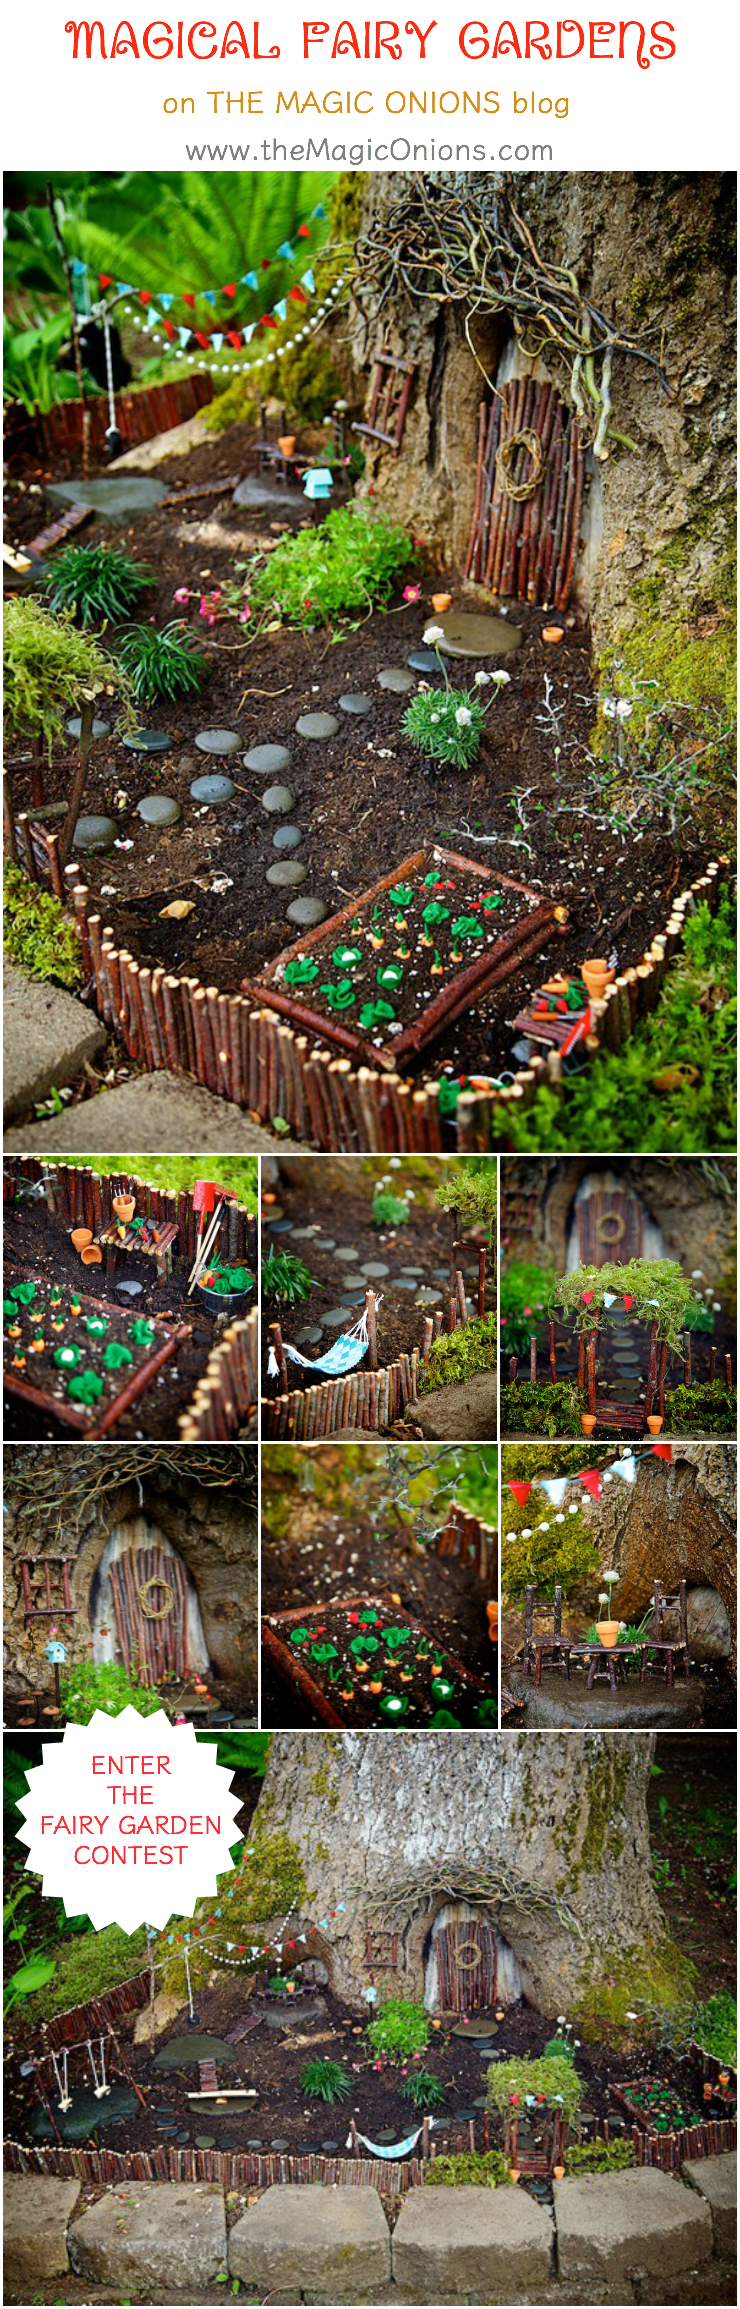 Come and see the most MAGICAL fairy gardens on The Magic Onions ...